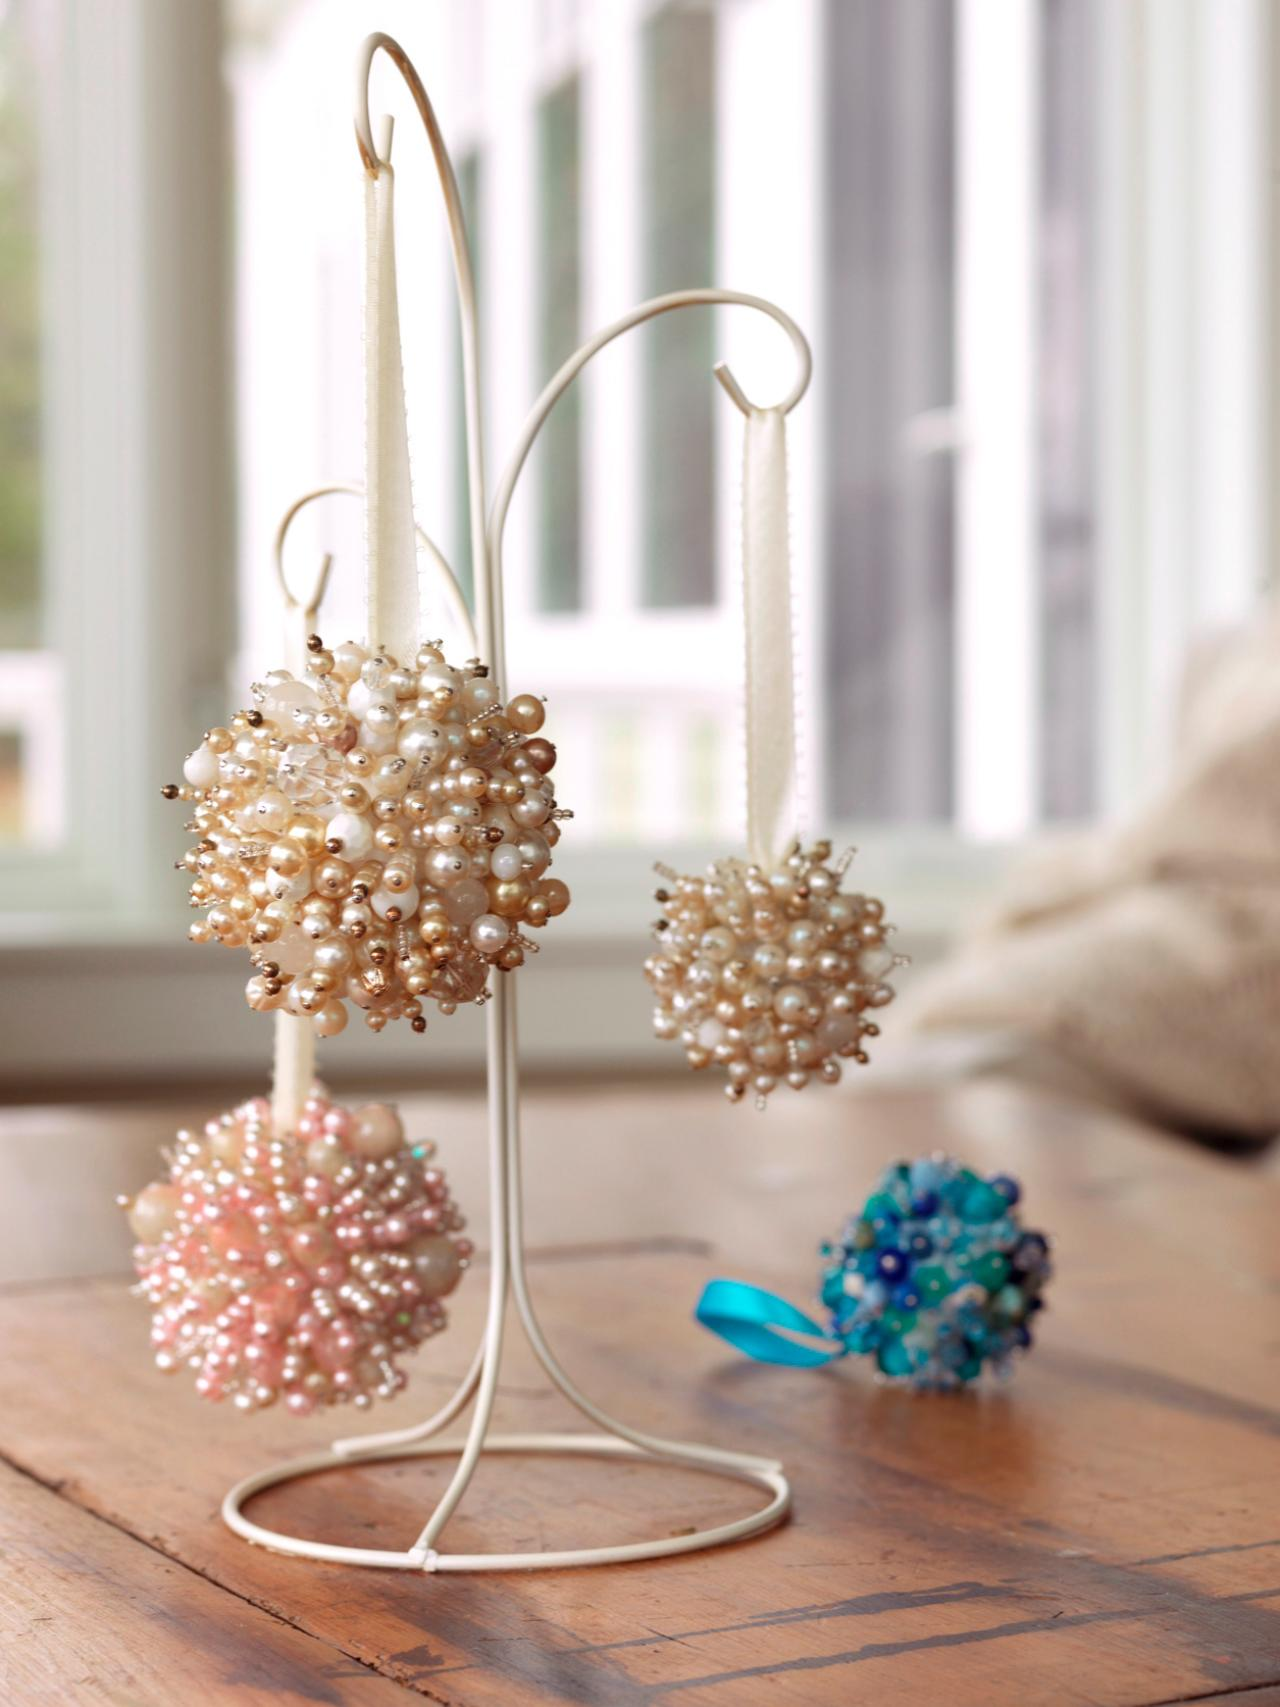 35 DIY Christmas Ornaments: From Easy To Intricate!